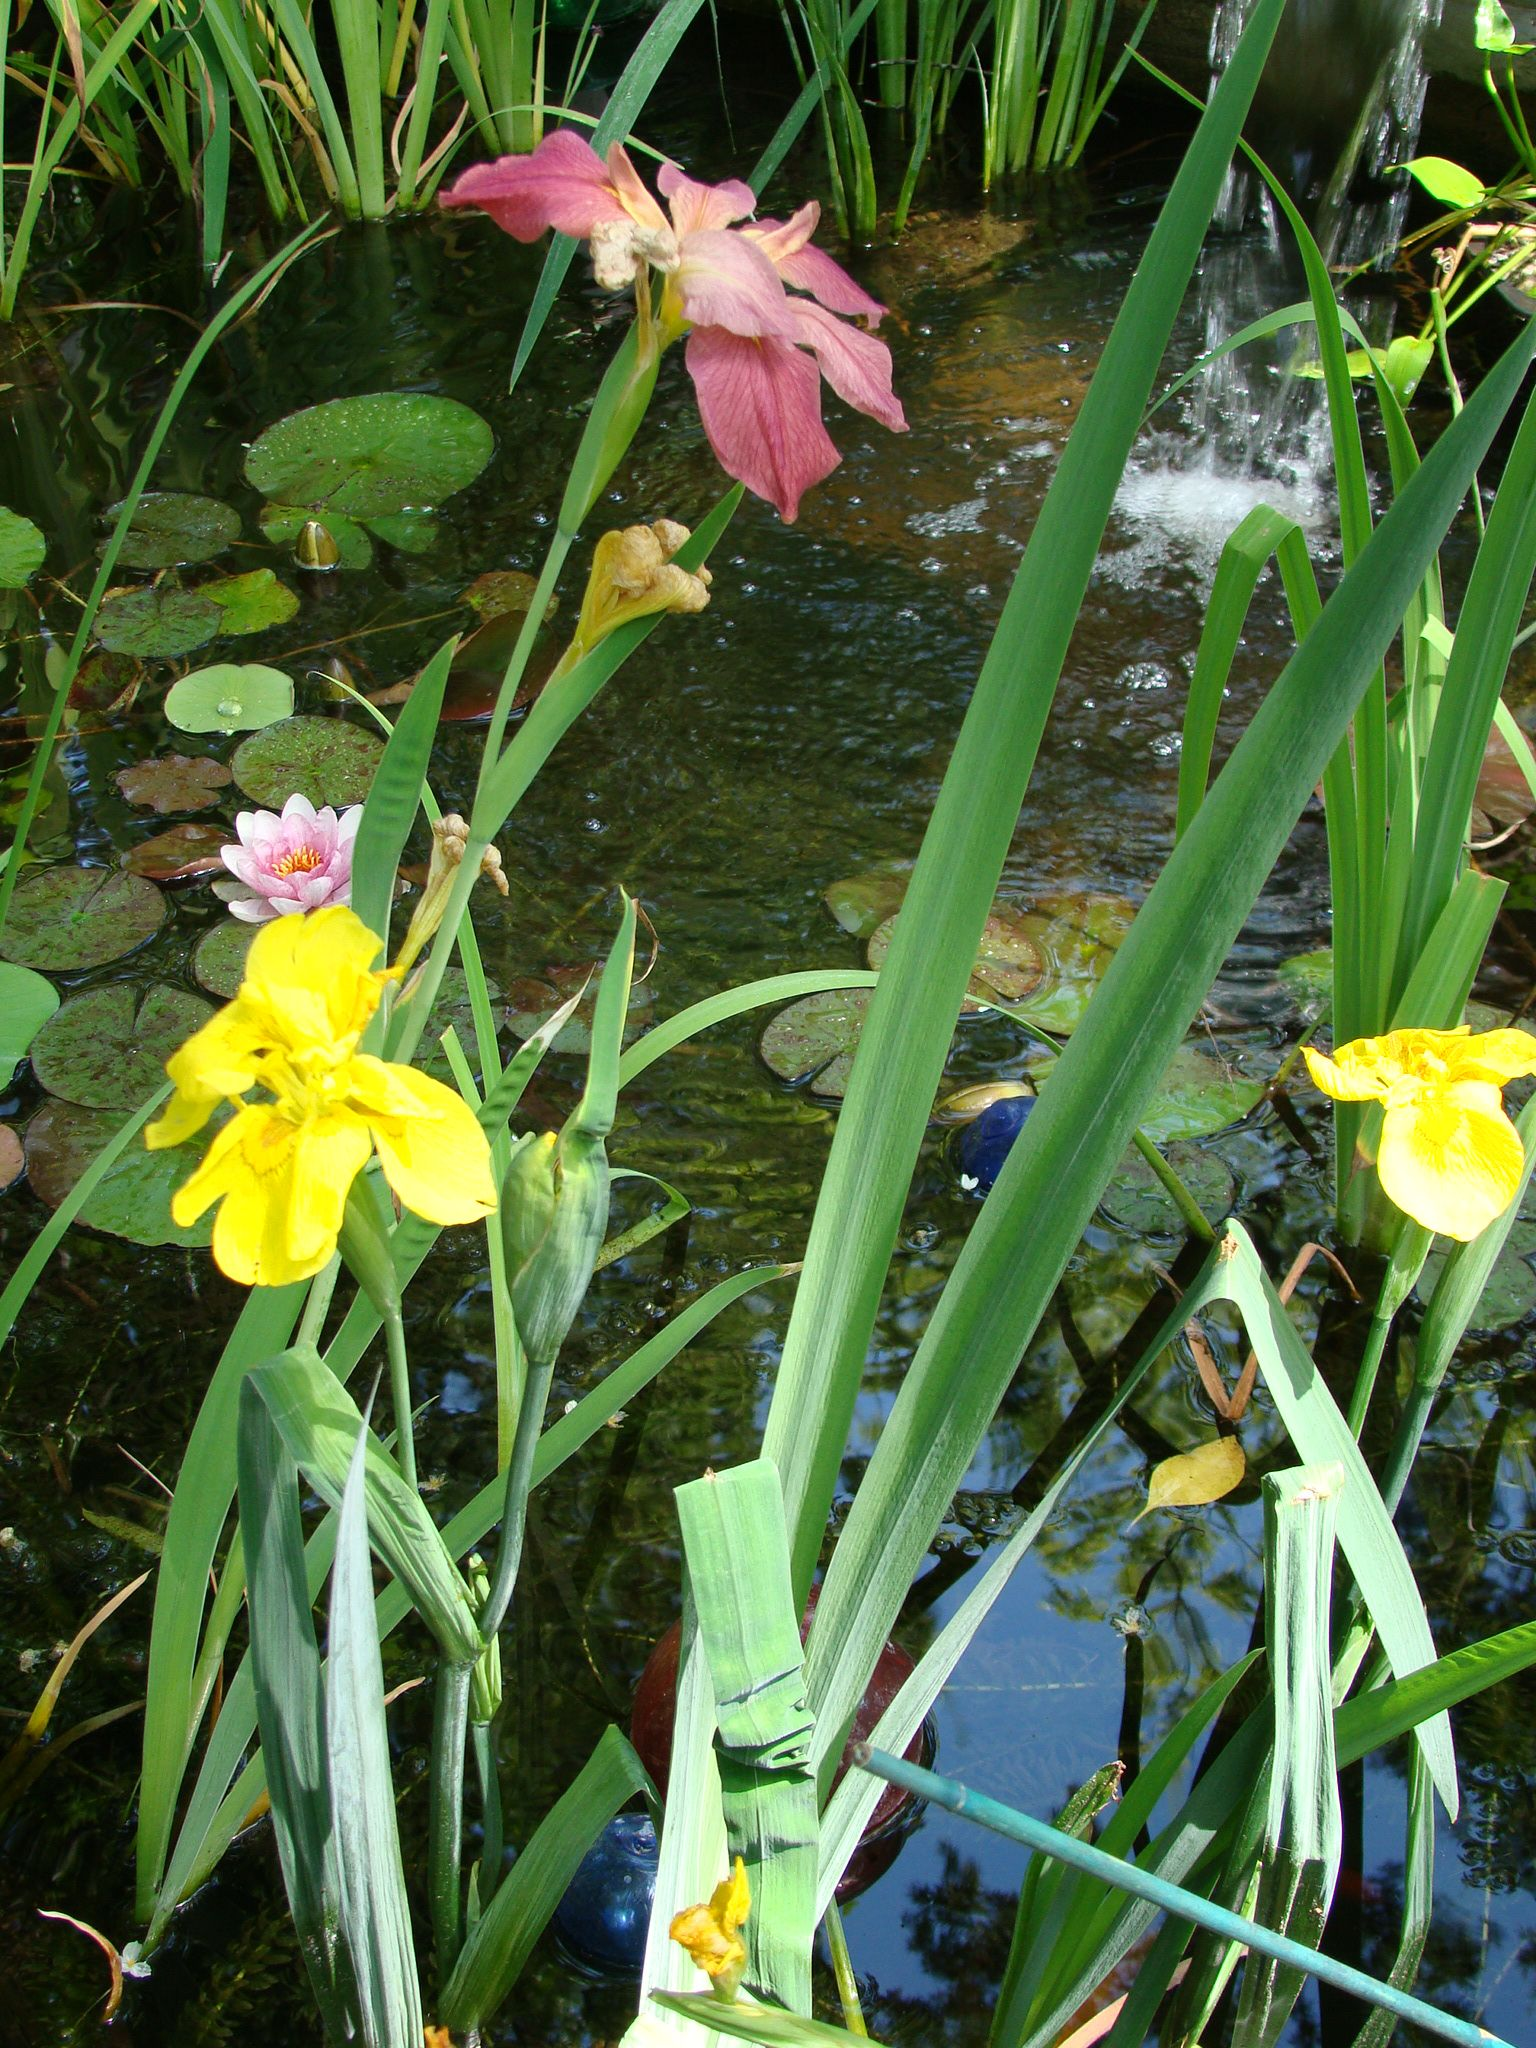 Late Spring Pond Iris Blooms Note The Pink Waterlily And Colored